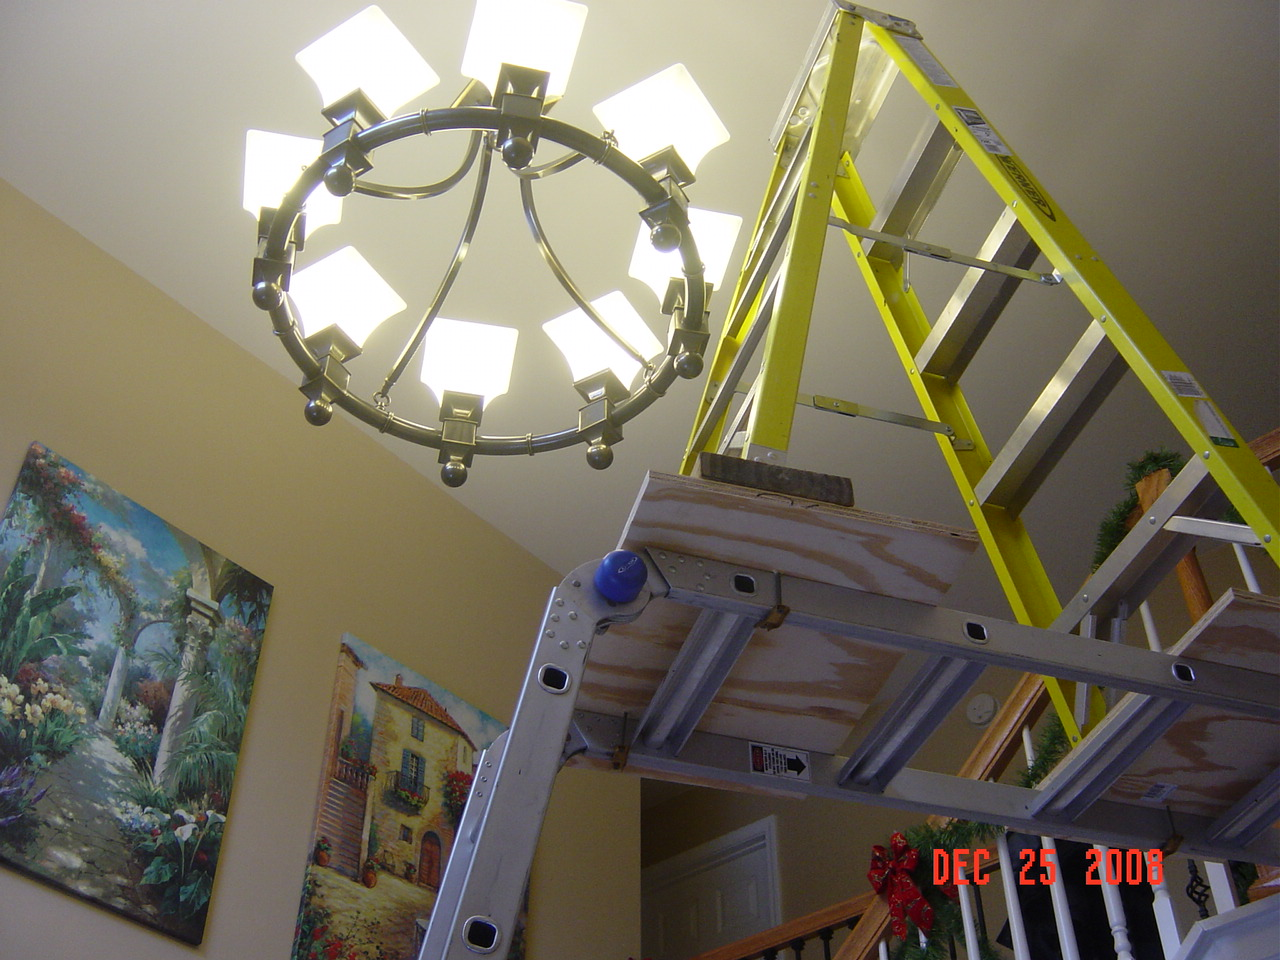 Replacing Chandelier Entry Is 2 Stories Tall Dsc01823 Jpg